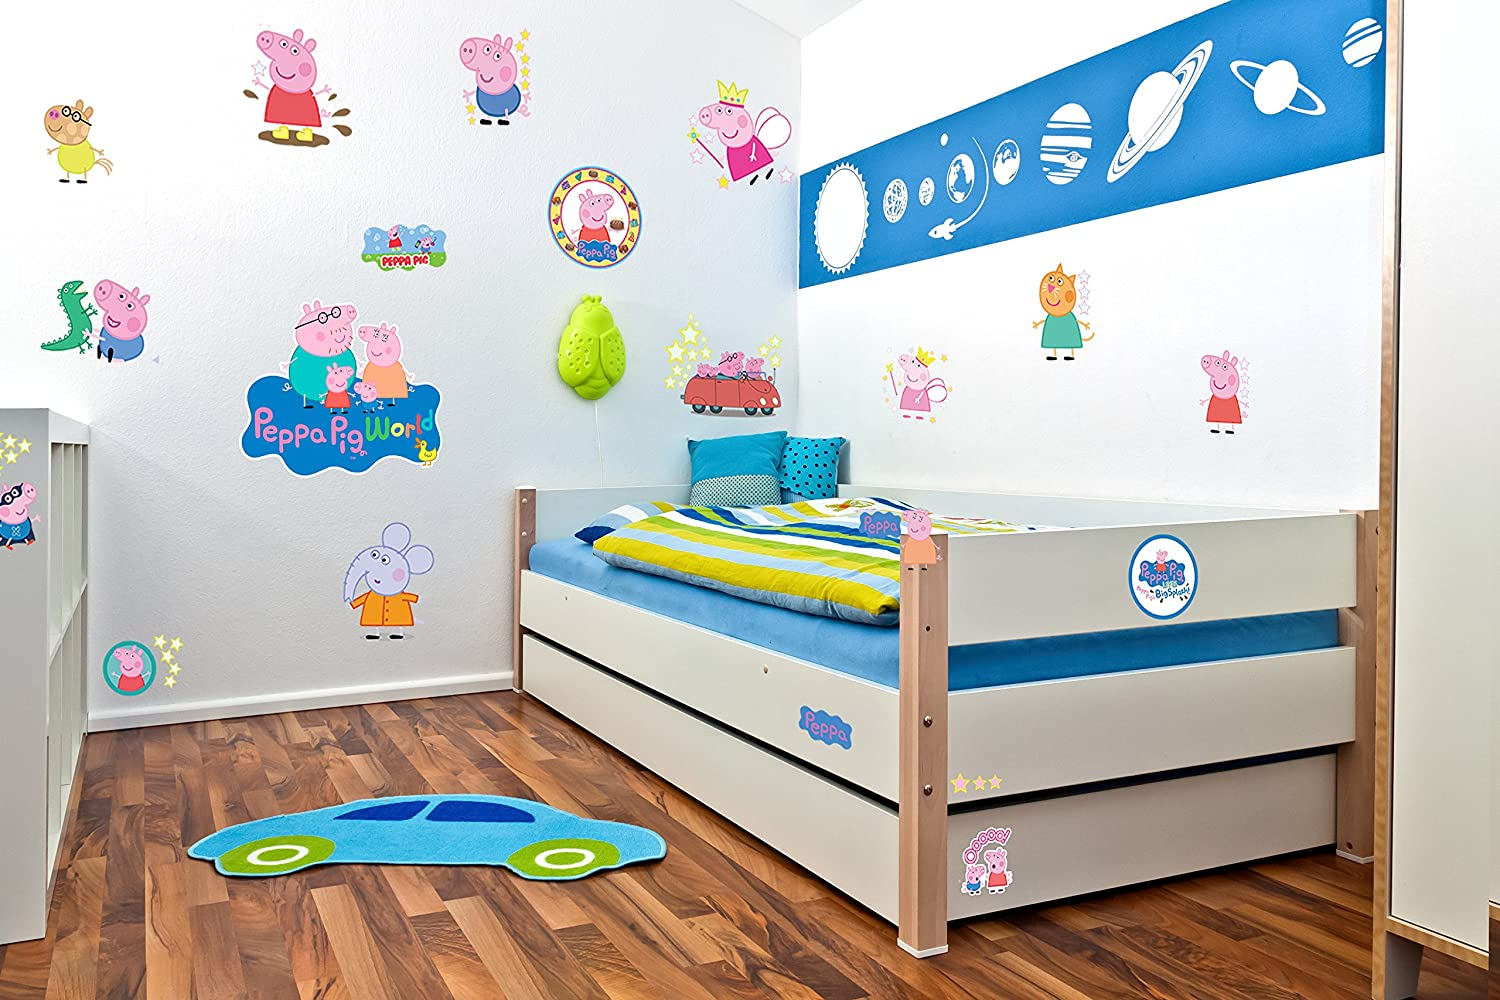 Peppa pig wall stickers decal kids room bedroom children peppa001 peppa pig wall stickers decal kids room bedroom children peppa001 amazon diy tools amipublicfo Images